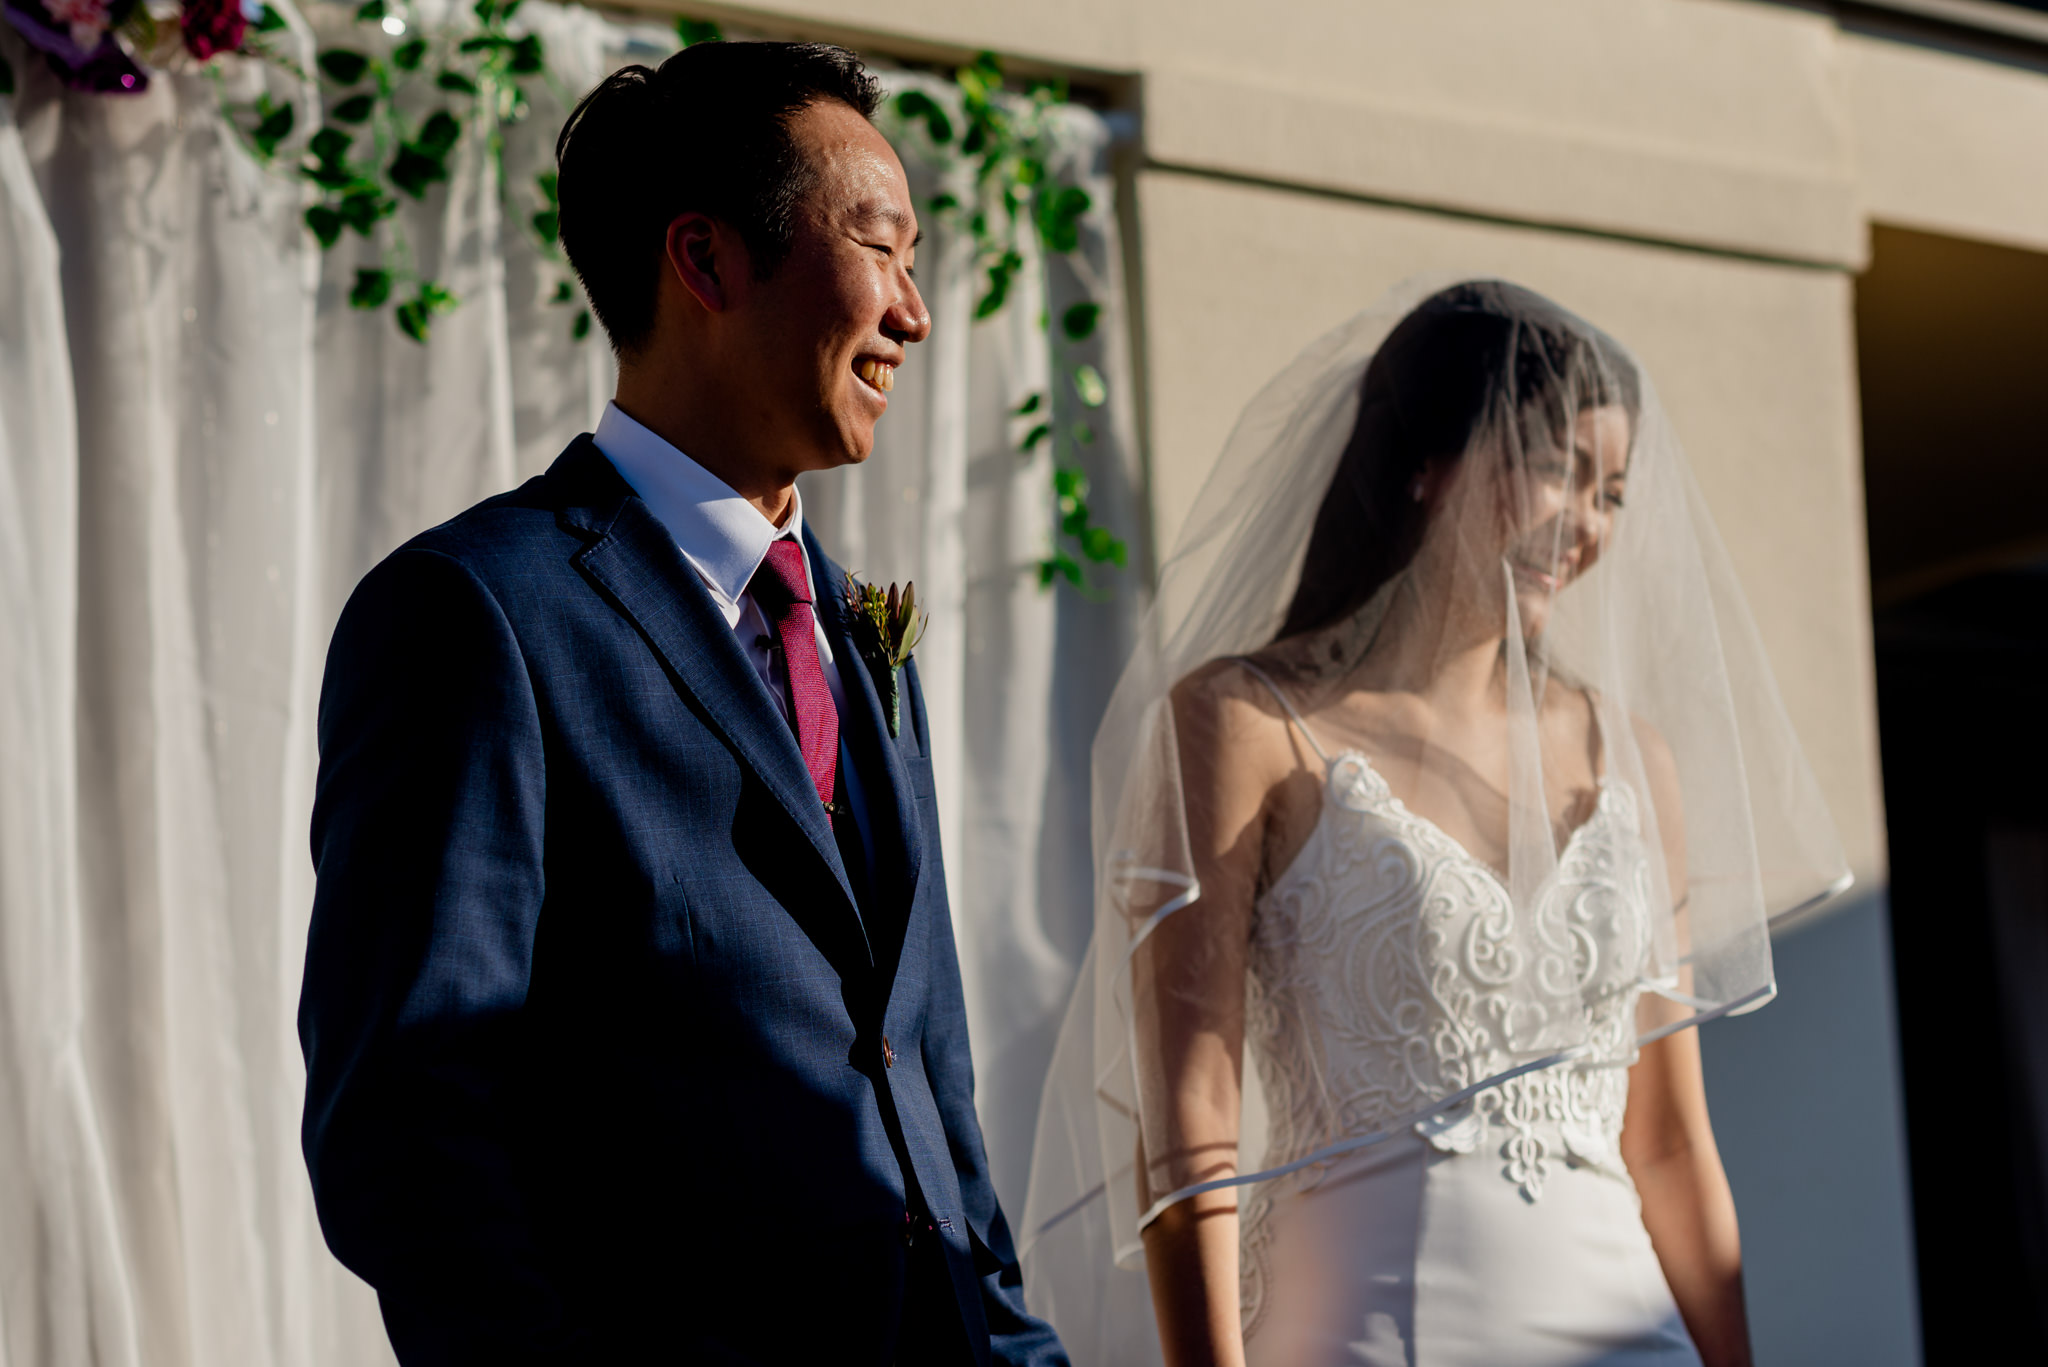 A laughing bride and groom during their outdoor wedding ceremony